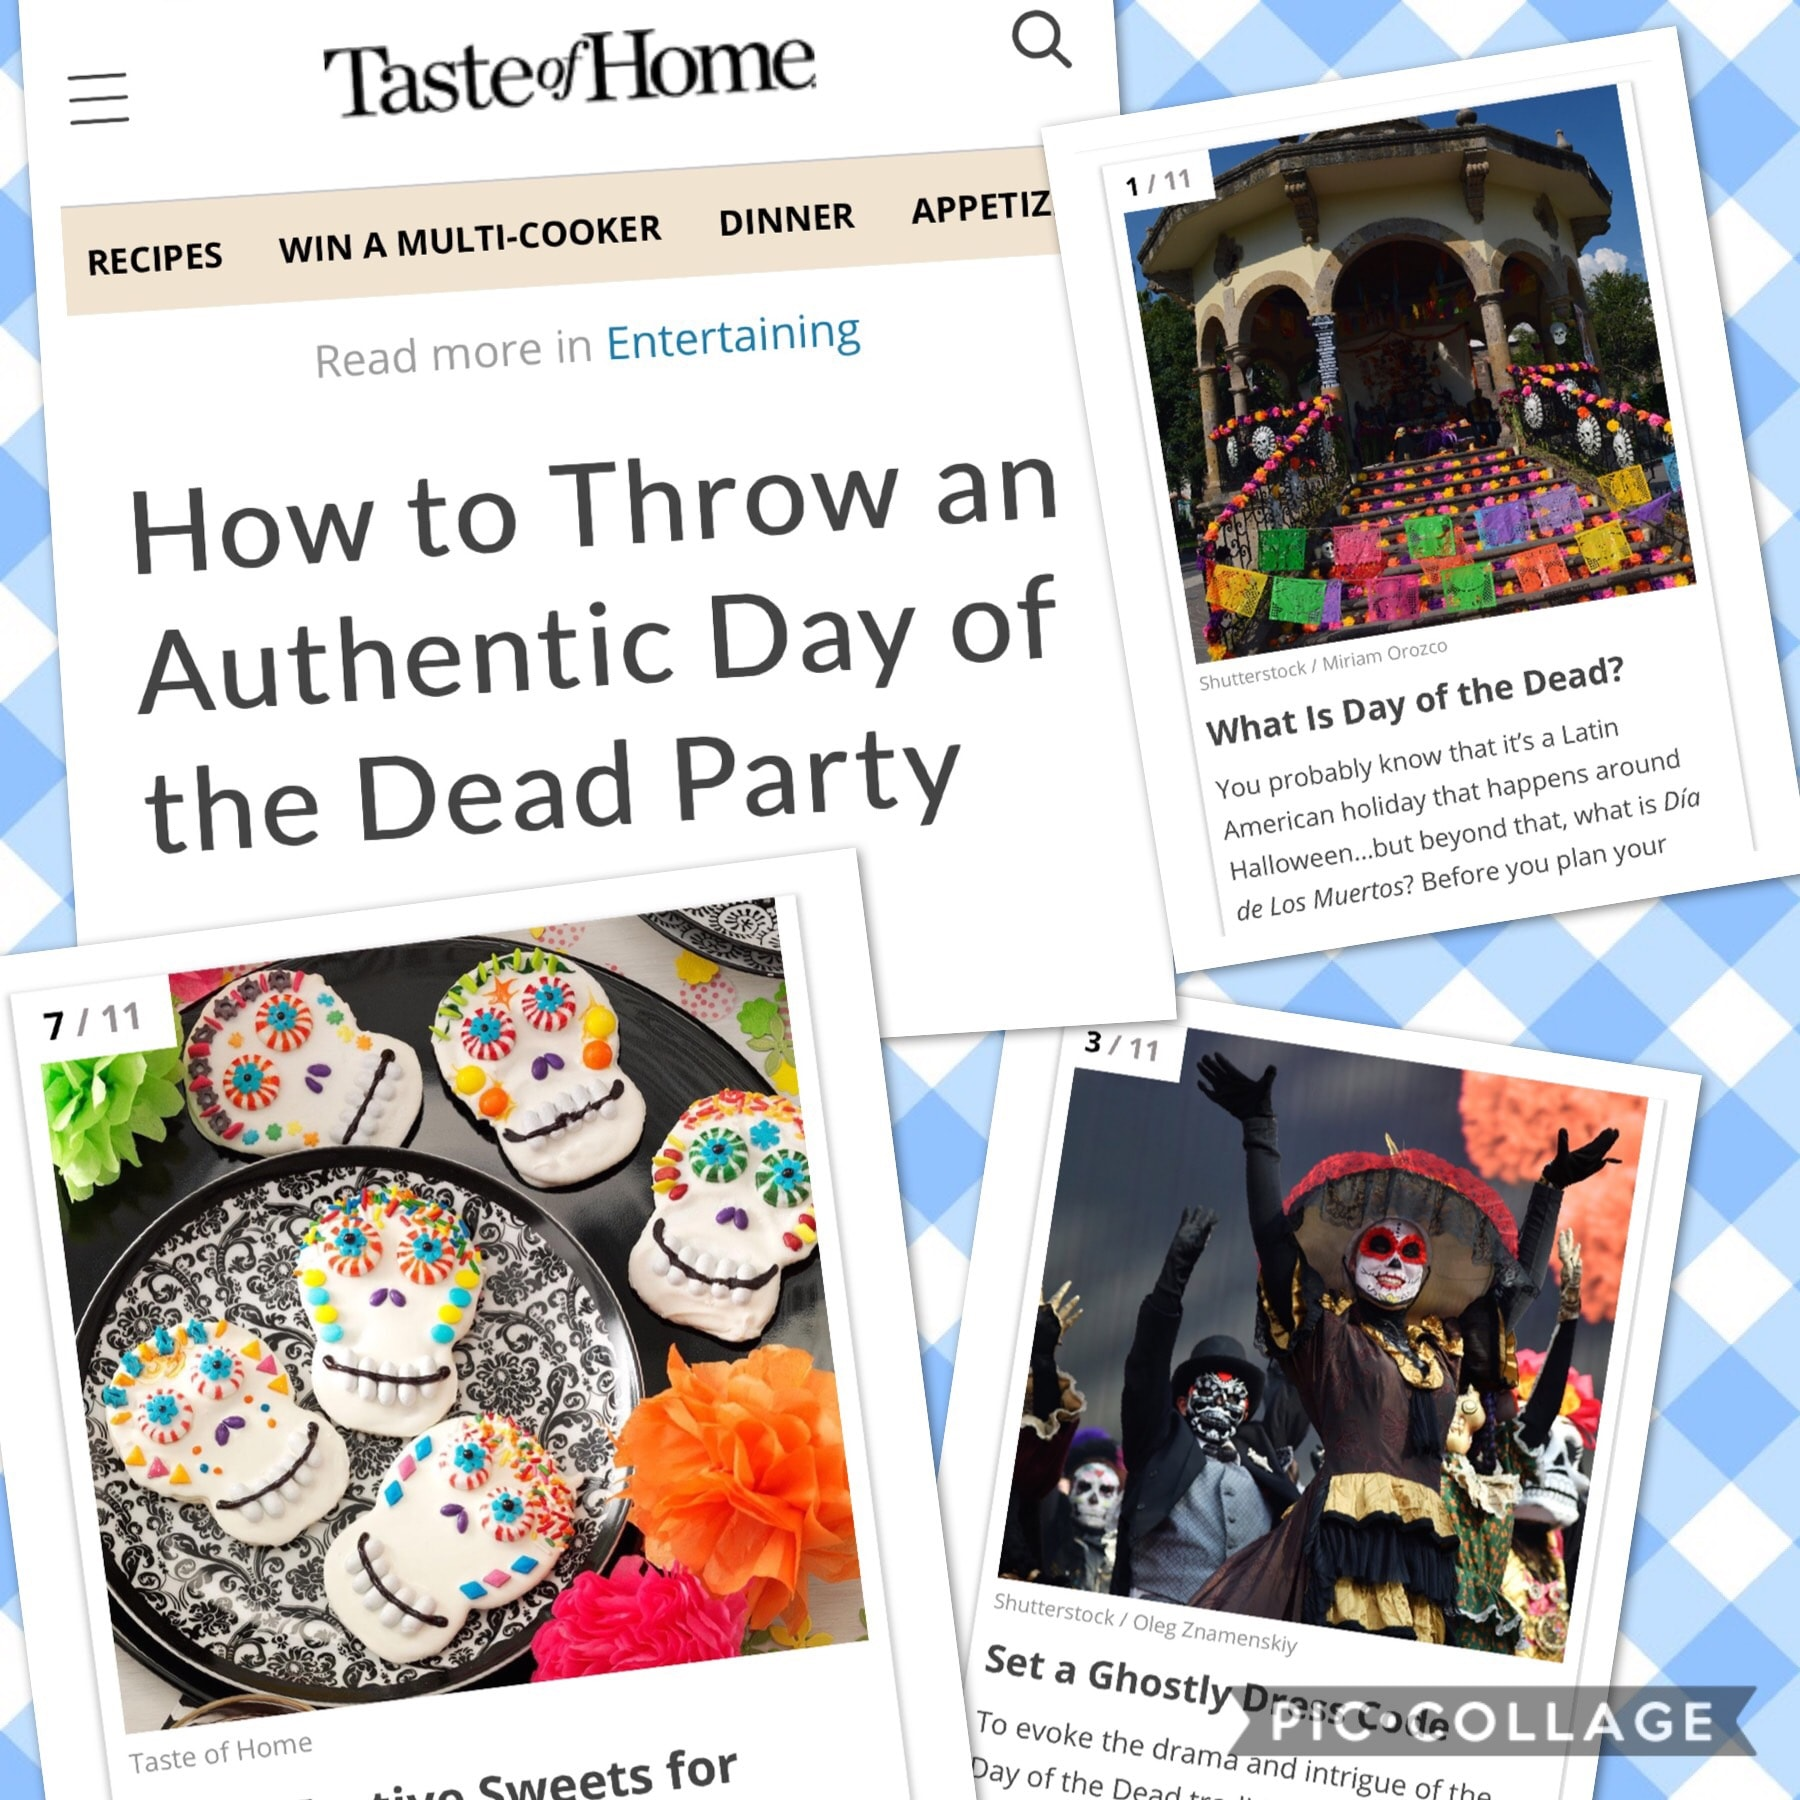 Collage of images from Taste of Home article about a Day of the Dead Party